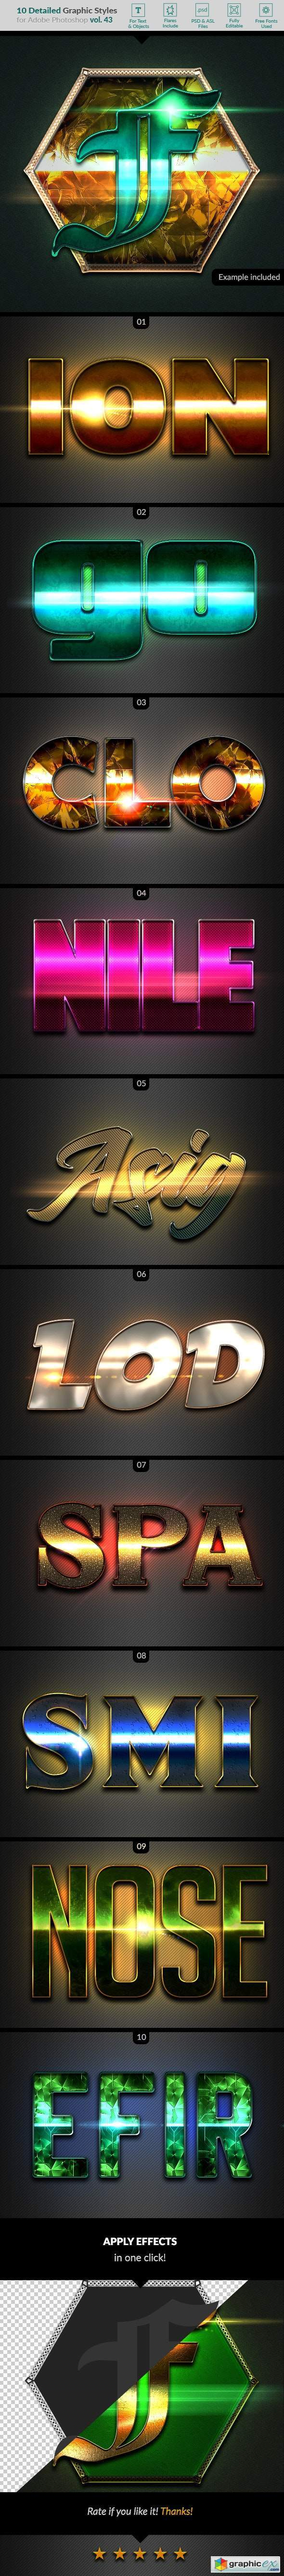 10 Text Effects Vol. 43